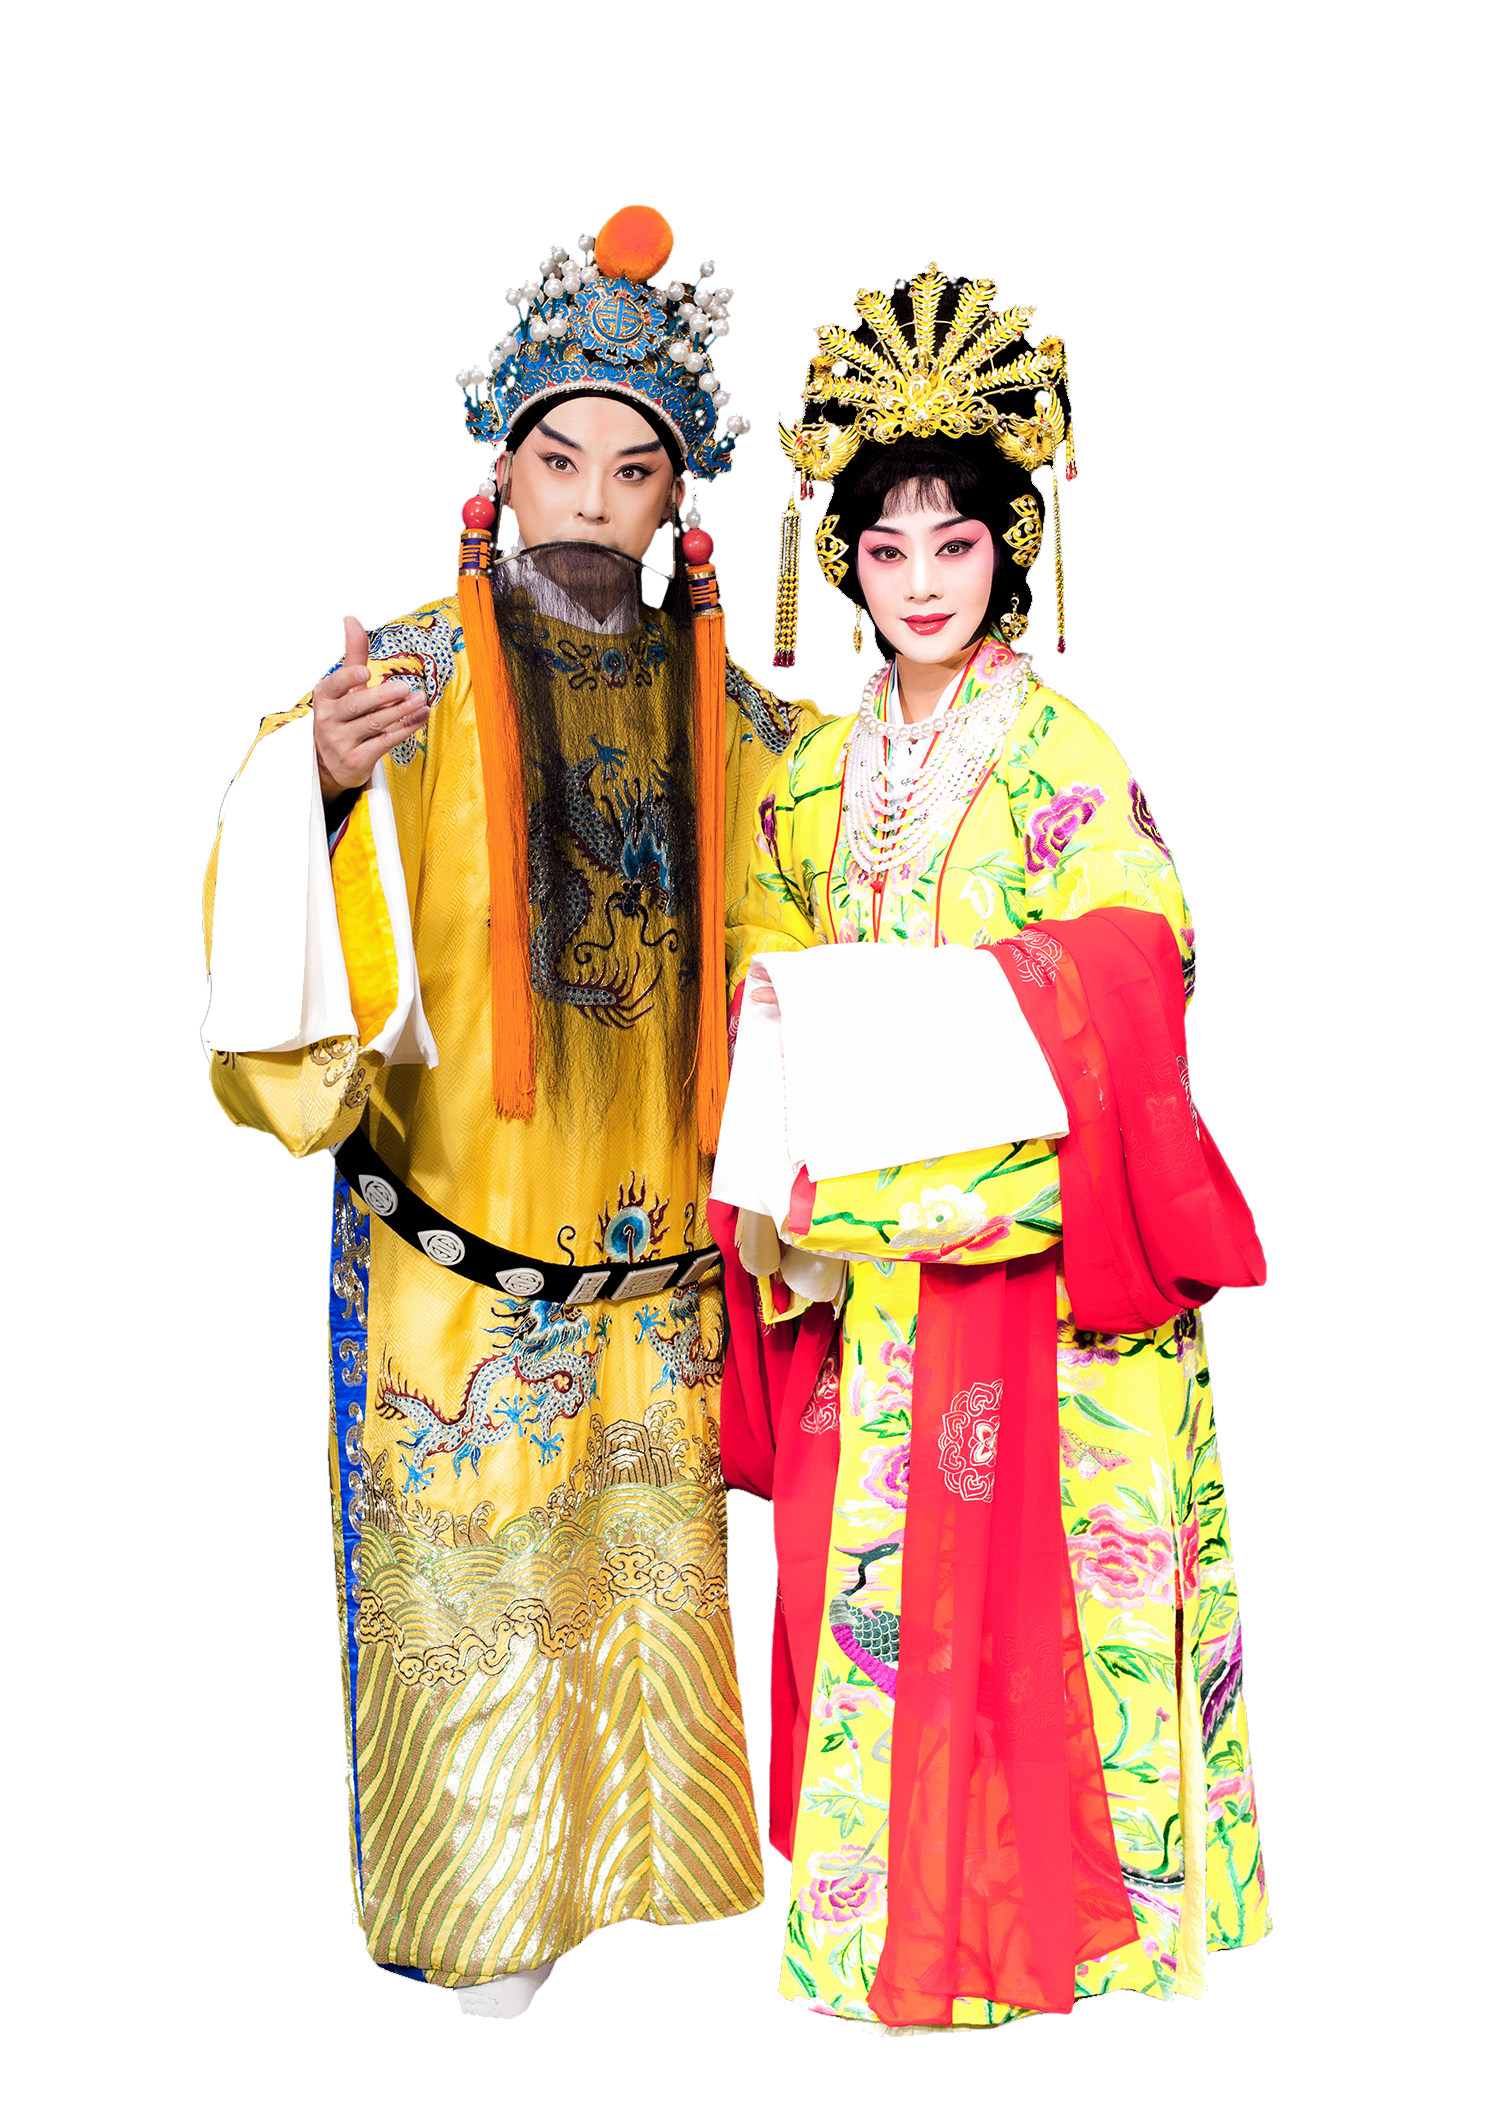 fa14c3ac7 ... Understanding Peking Opera interactive workshops and short performances  at Oxford Ashmolean Museum and British Library London, 12 – 14 October.